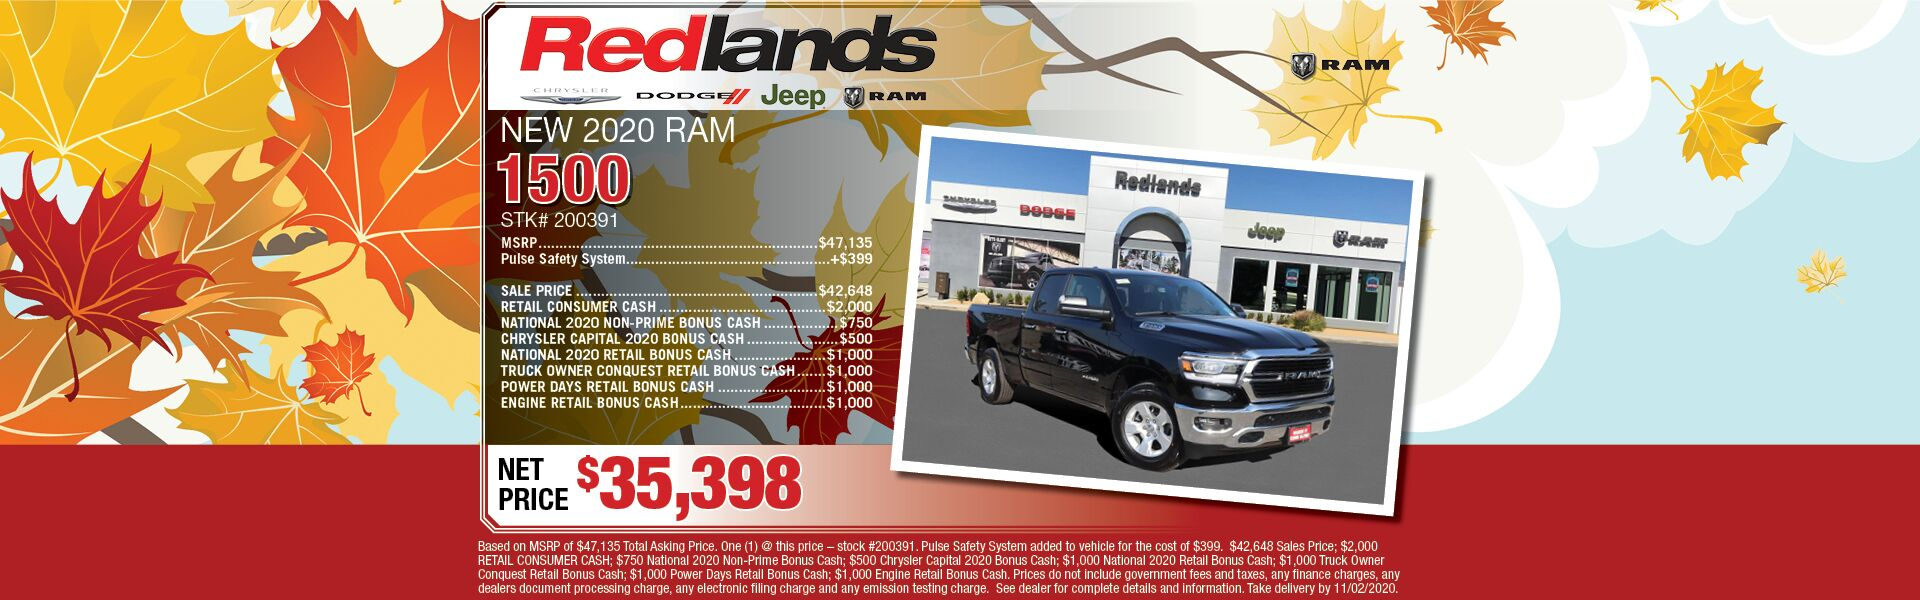 2020 Ram 1500 Finance Offer